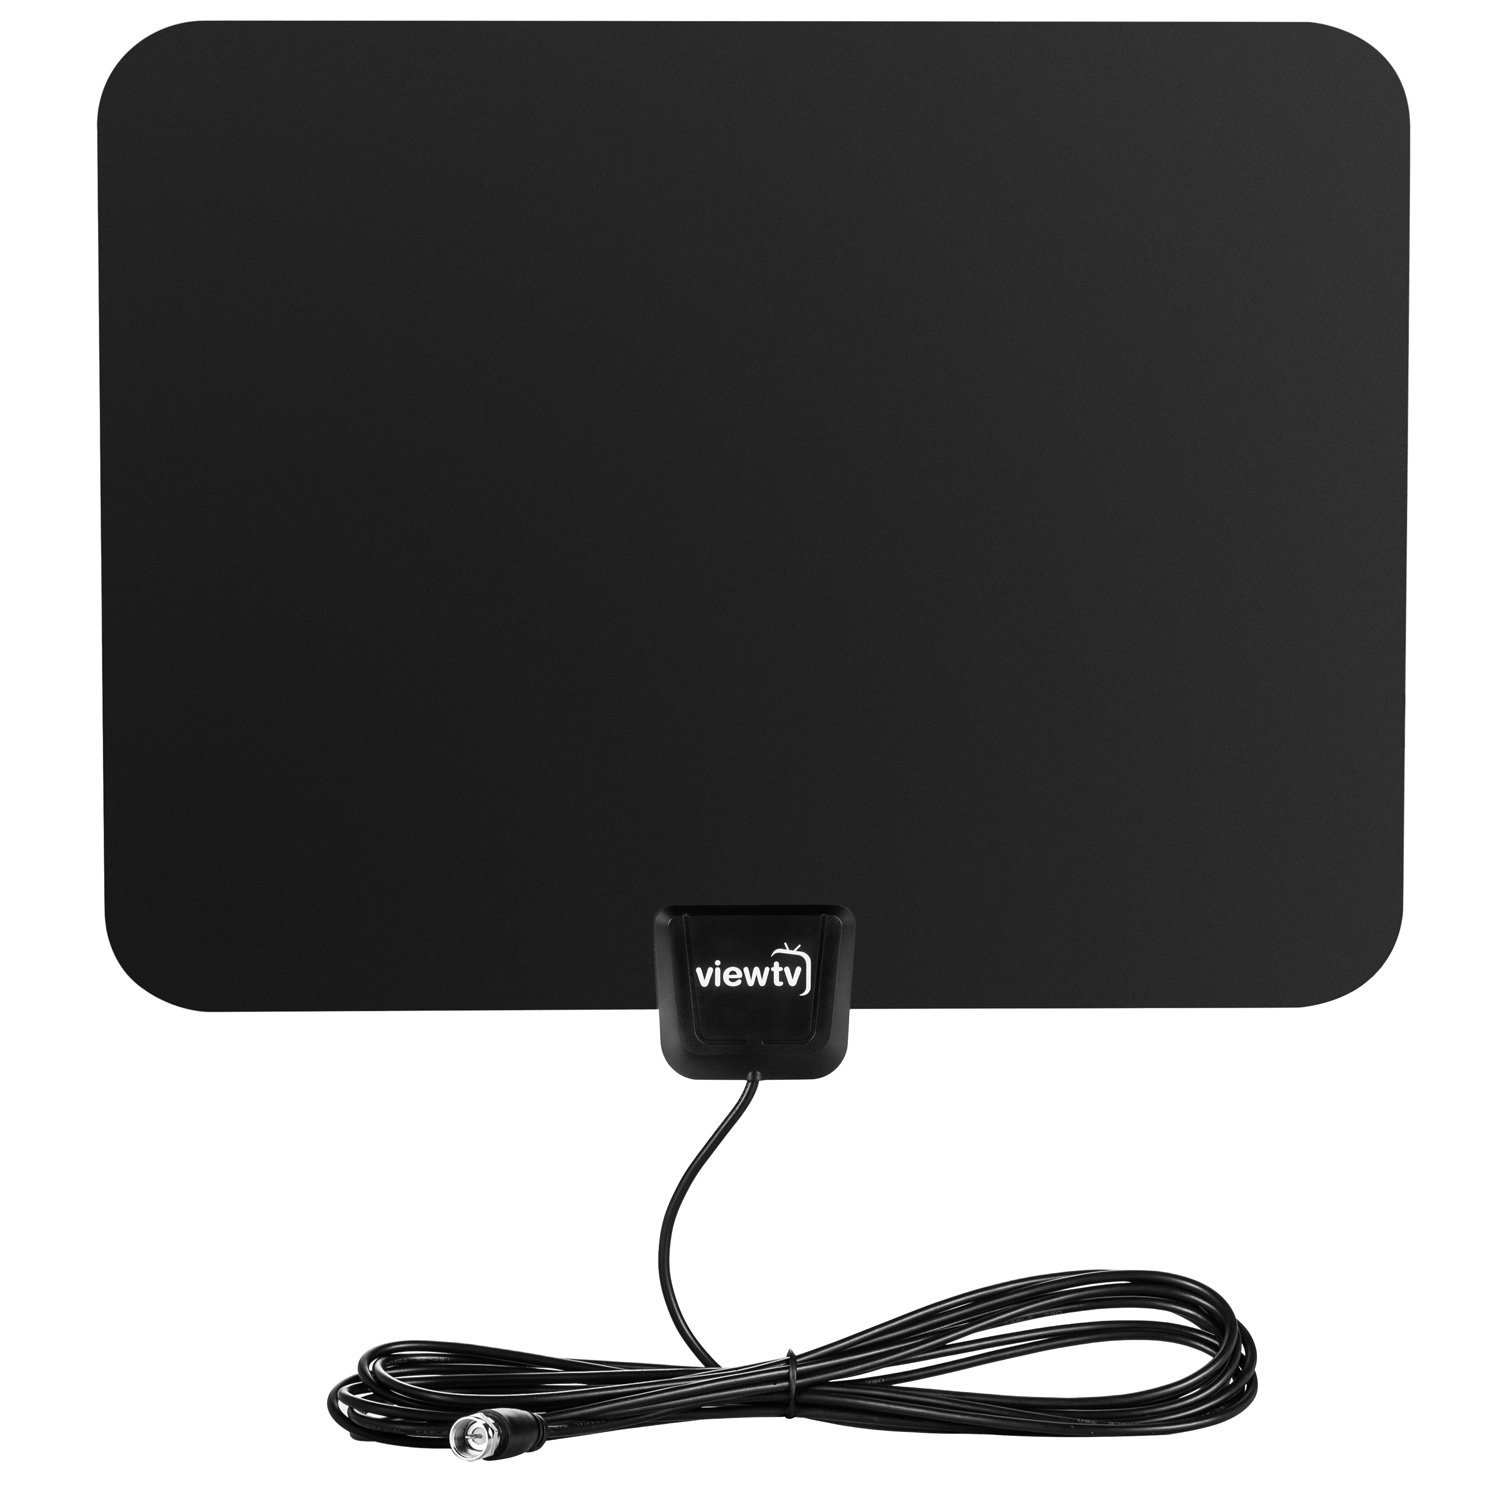 Digital Tv Signal Amplifier : Viewtv flat hd digital indoor amplified tv antenna